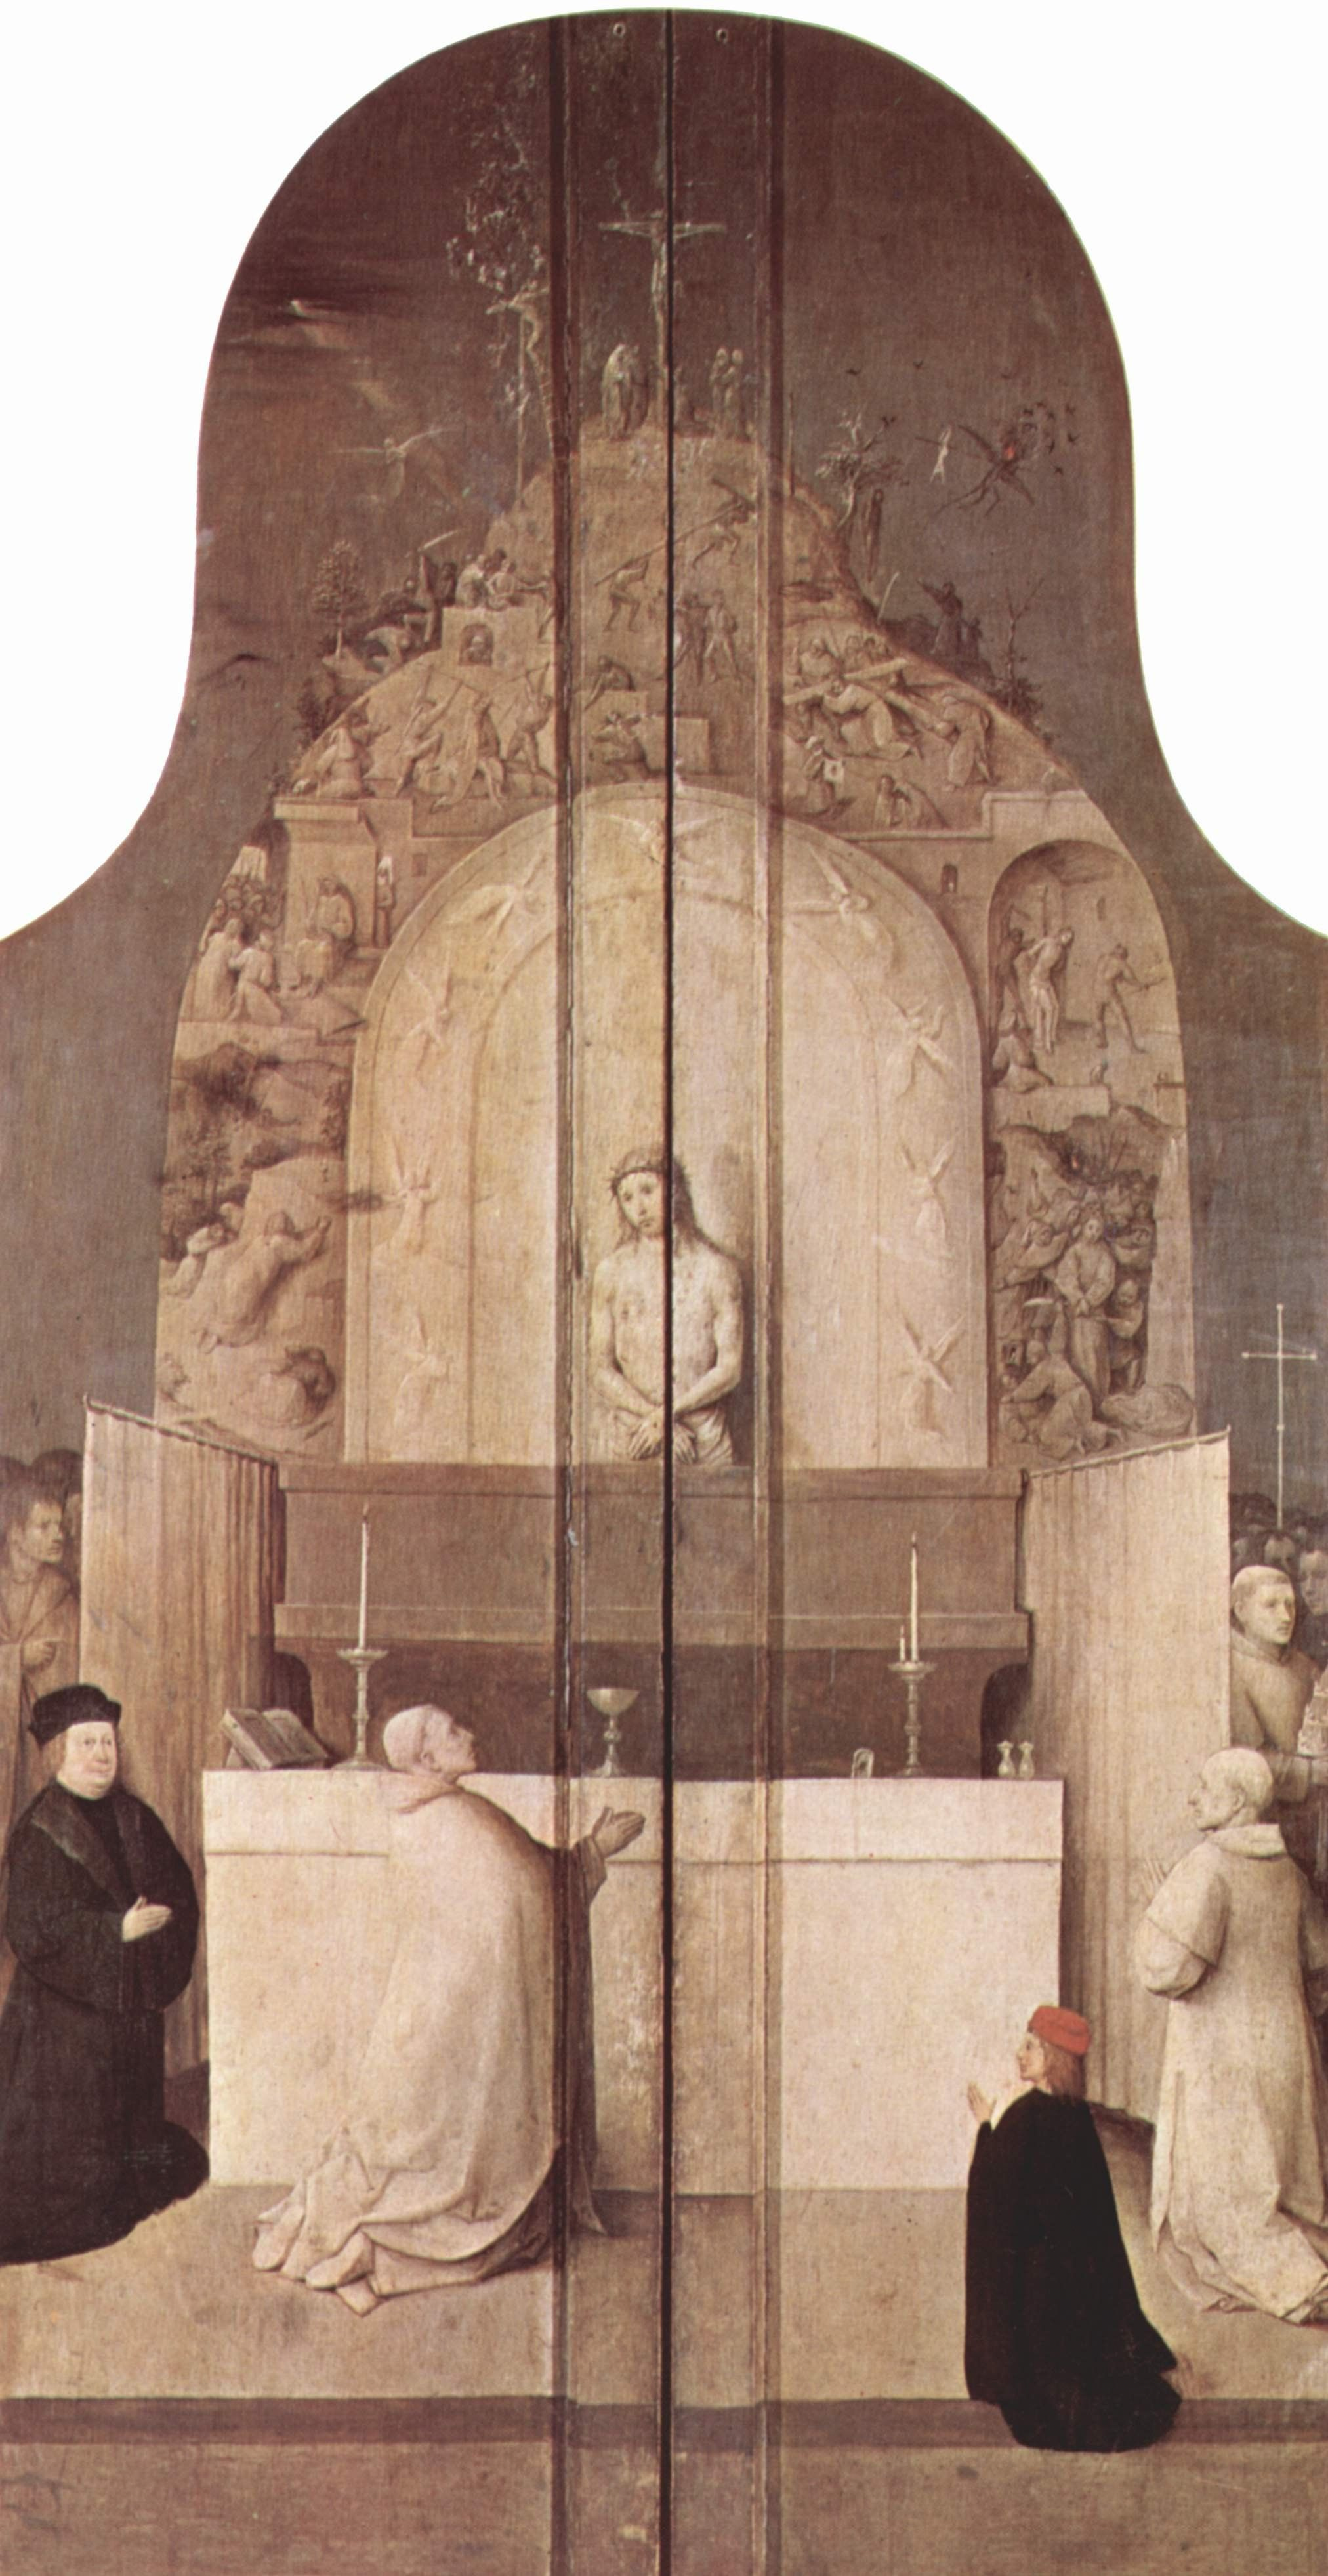 Hieronymus Bosch. The adoration of the Magi. The outer panels of a triptych